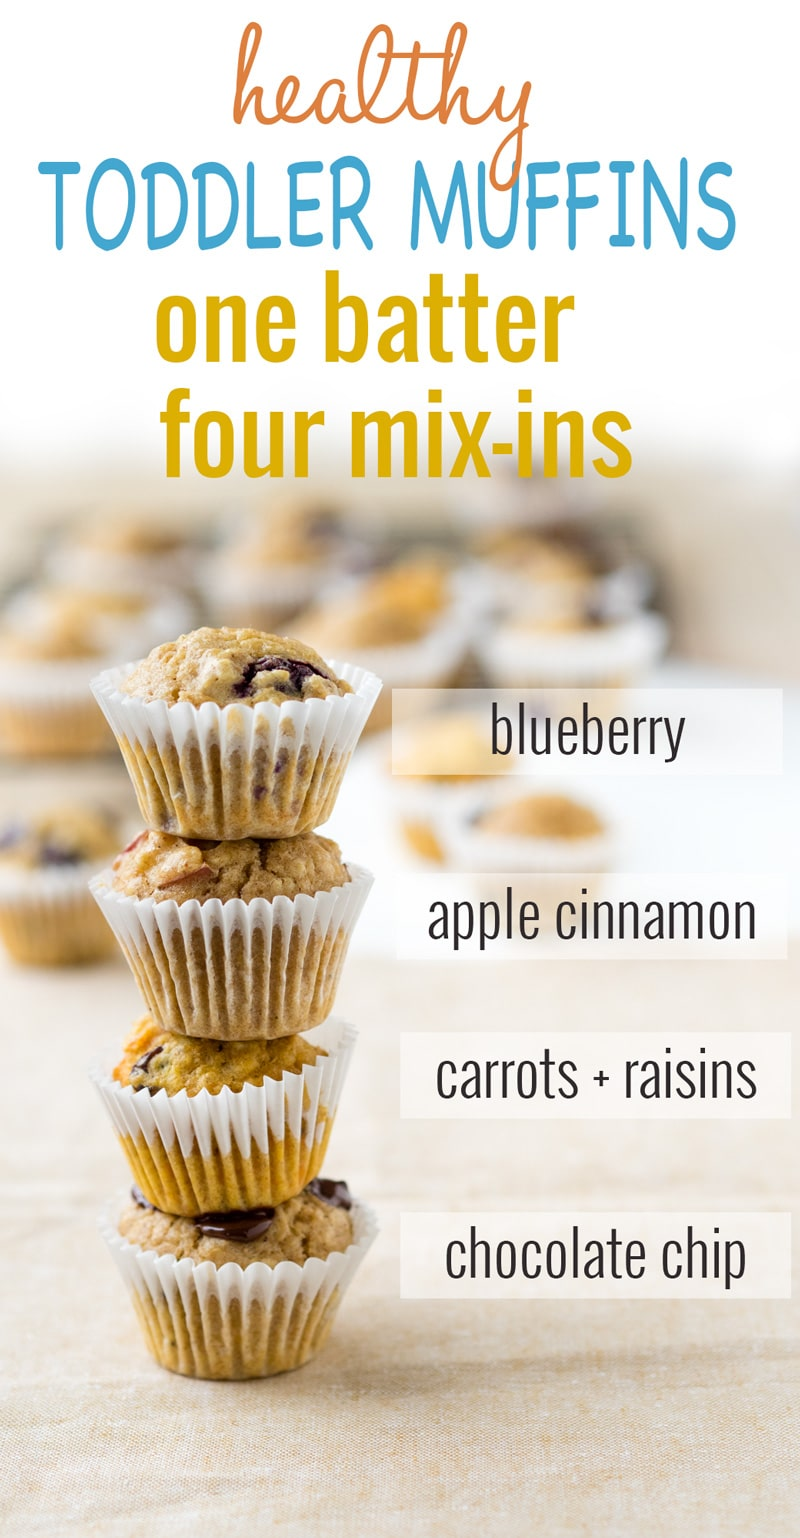 Toddler Muffins Breakfast Ideas | The Worktop